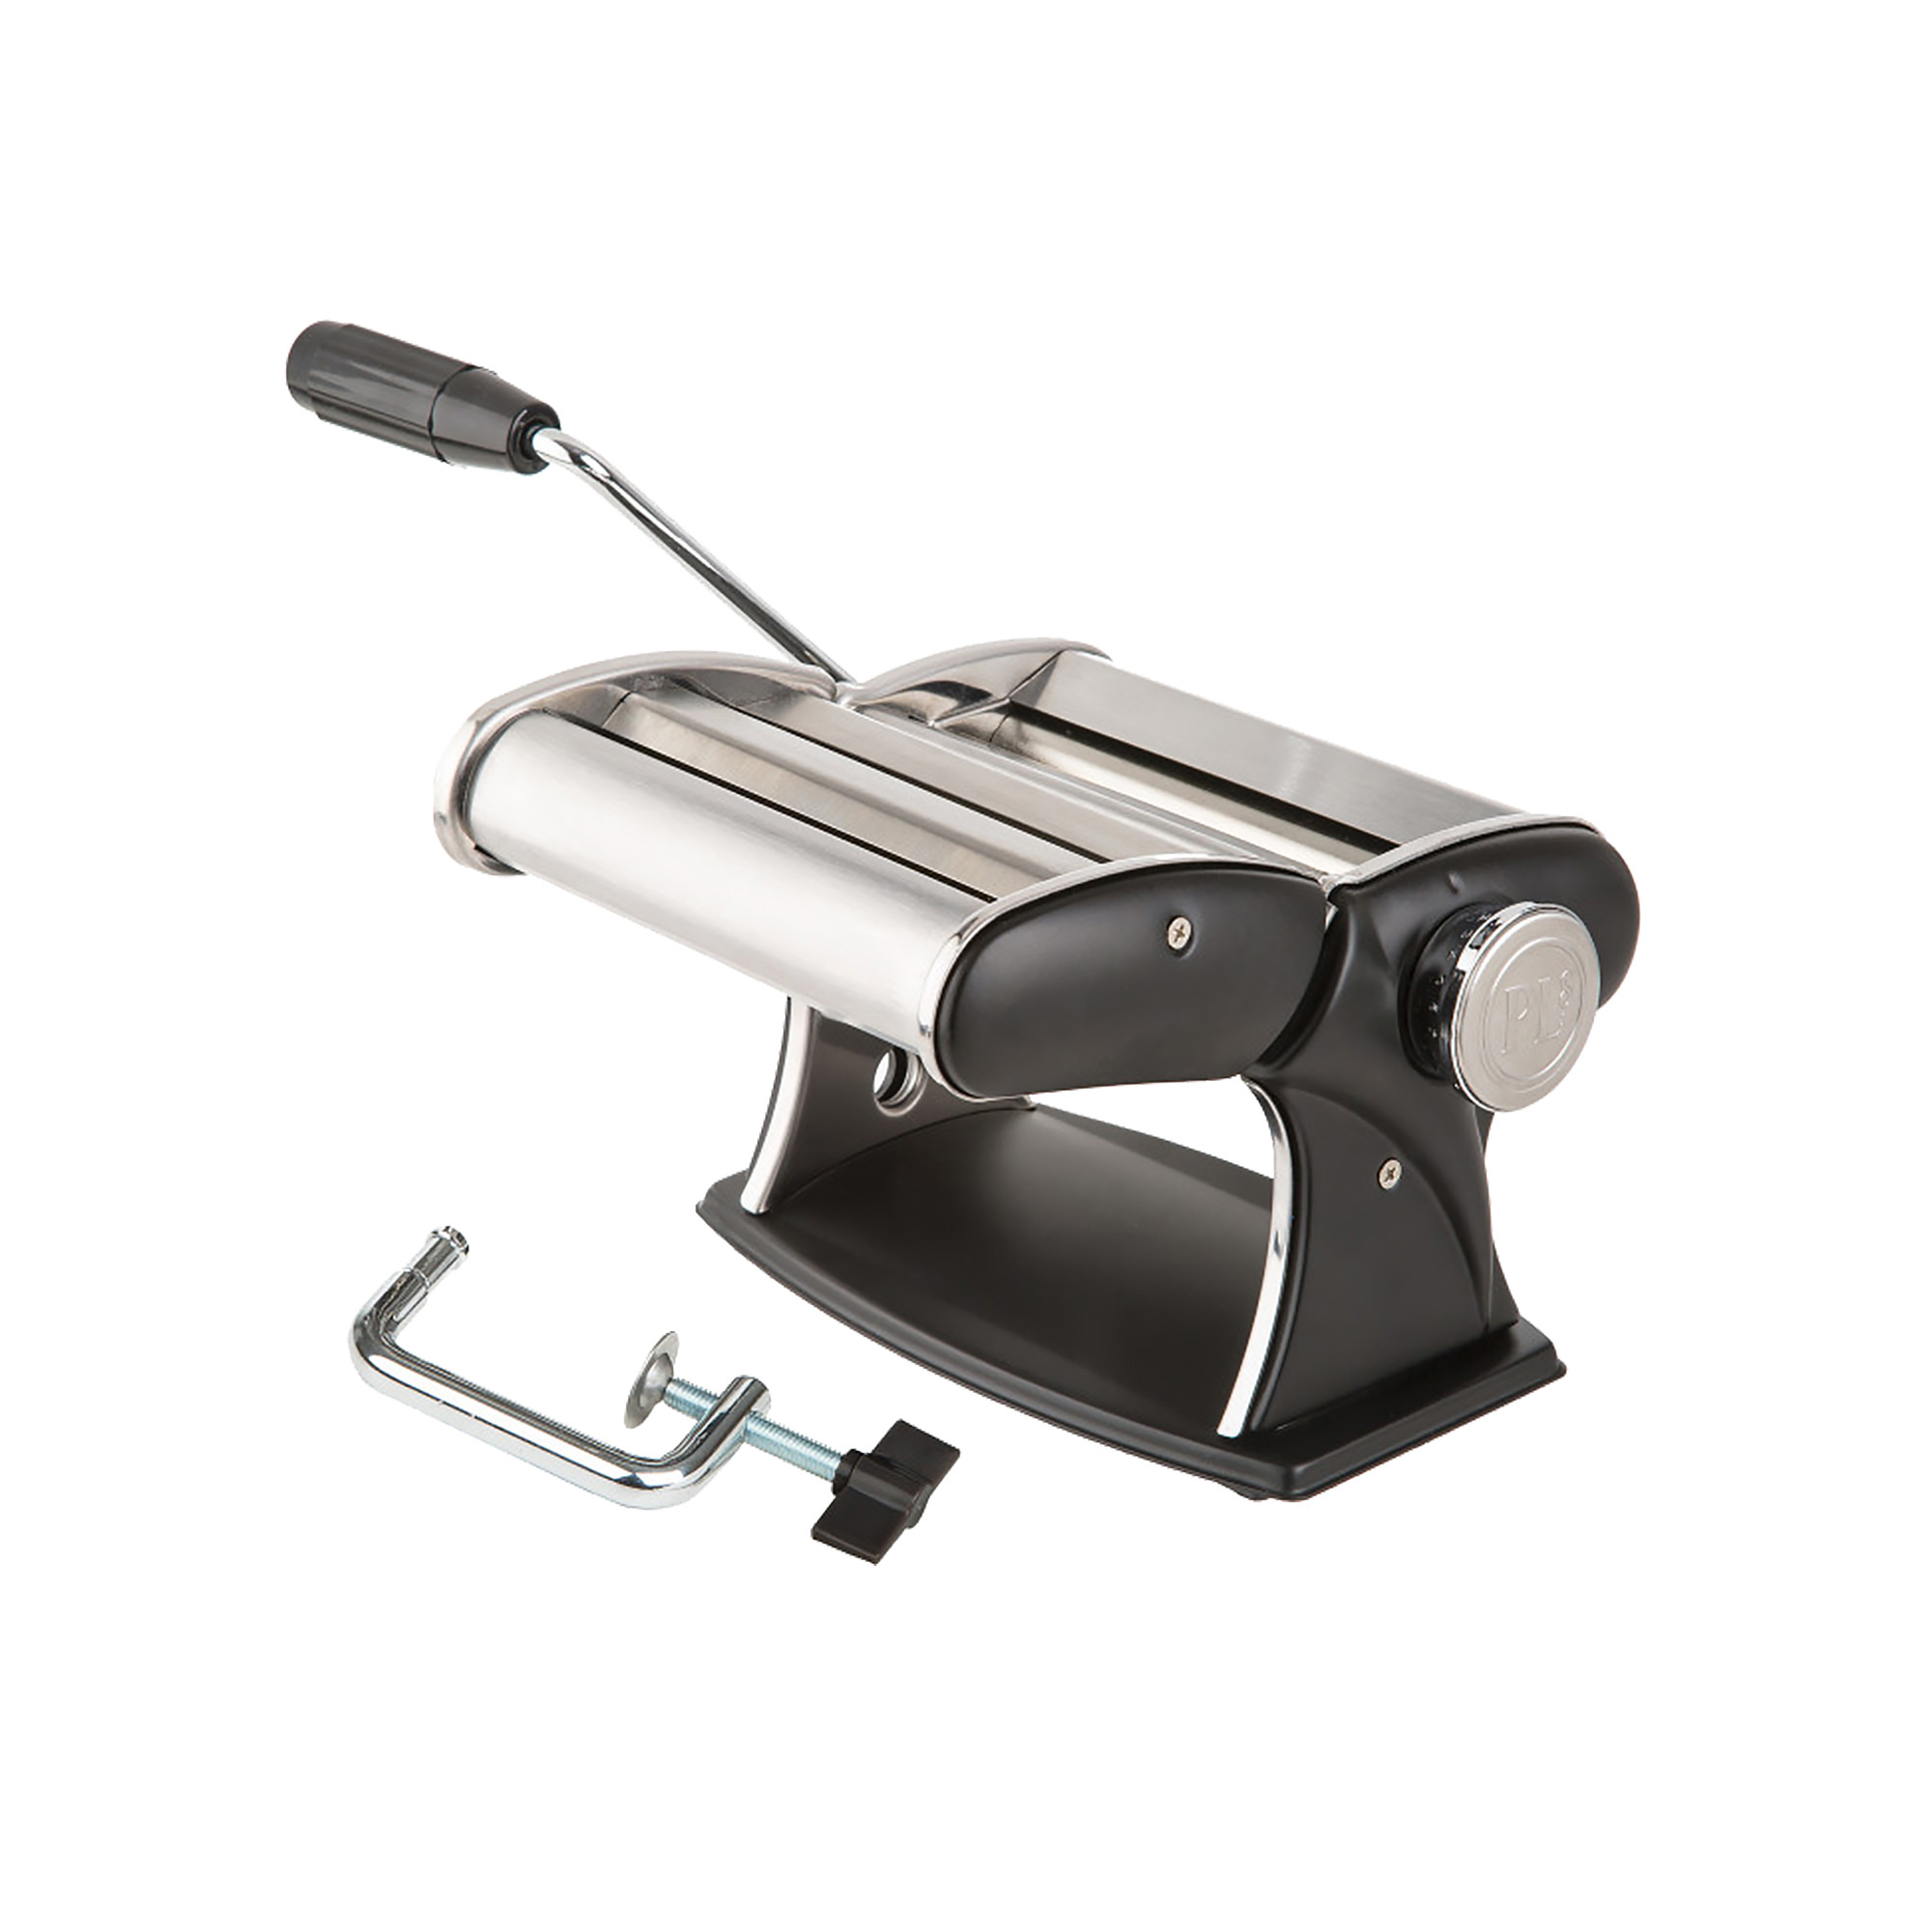 Progressive PL8 Professional Pasta Machine Black